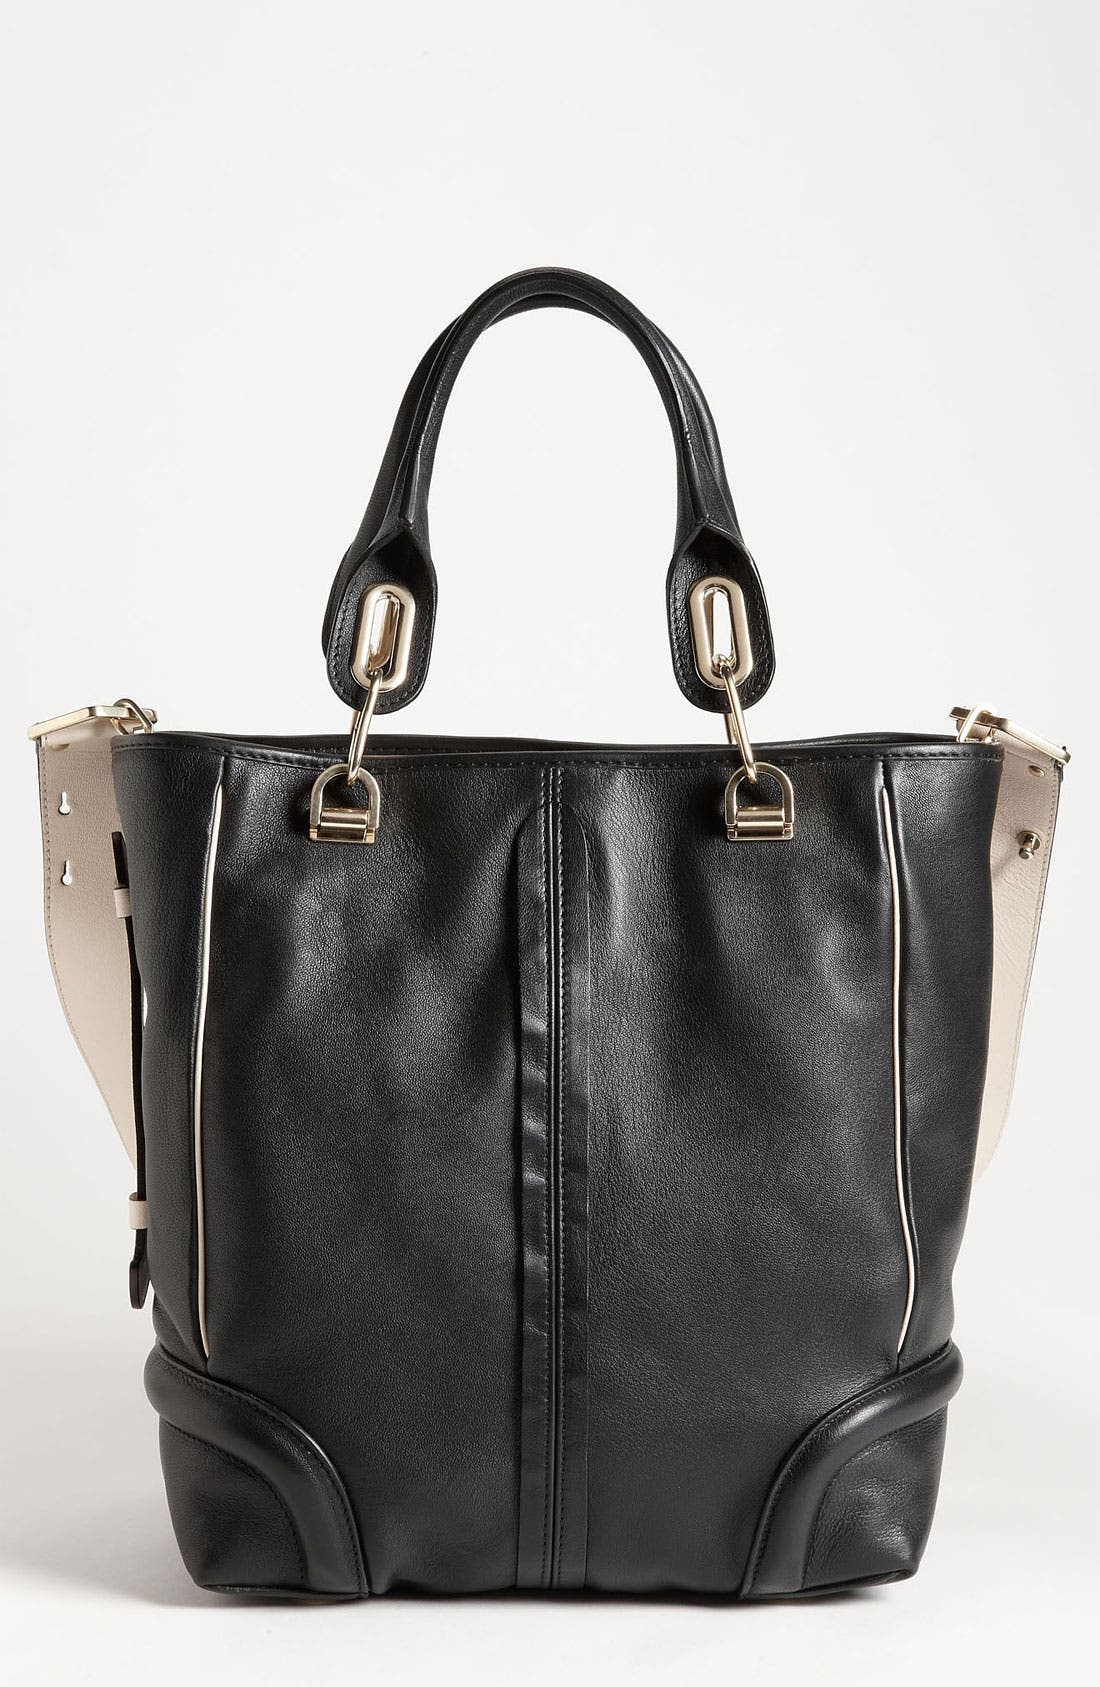 Main Image - Chloé 'Military Paraty - Medium' Leather Tote